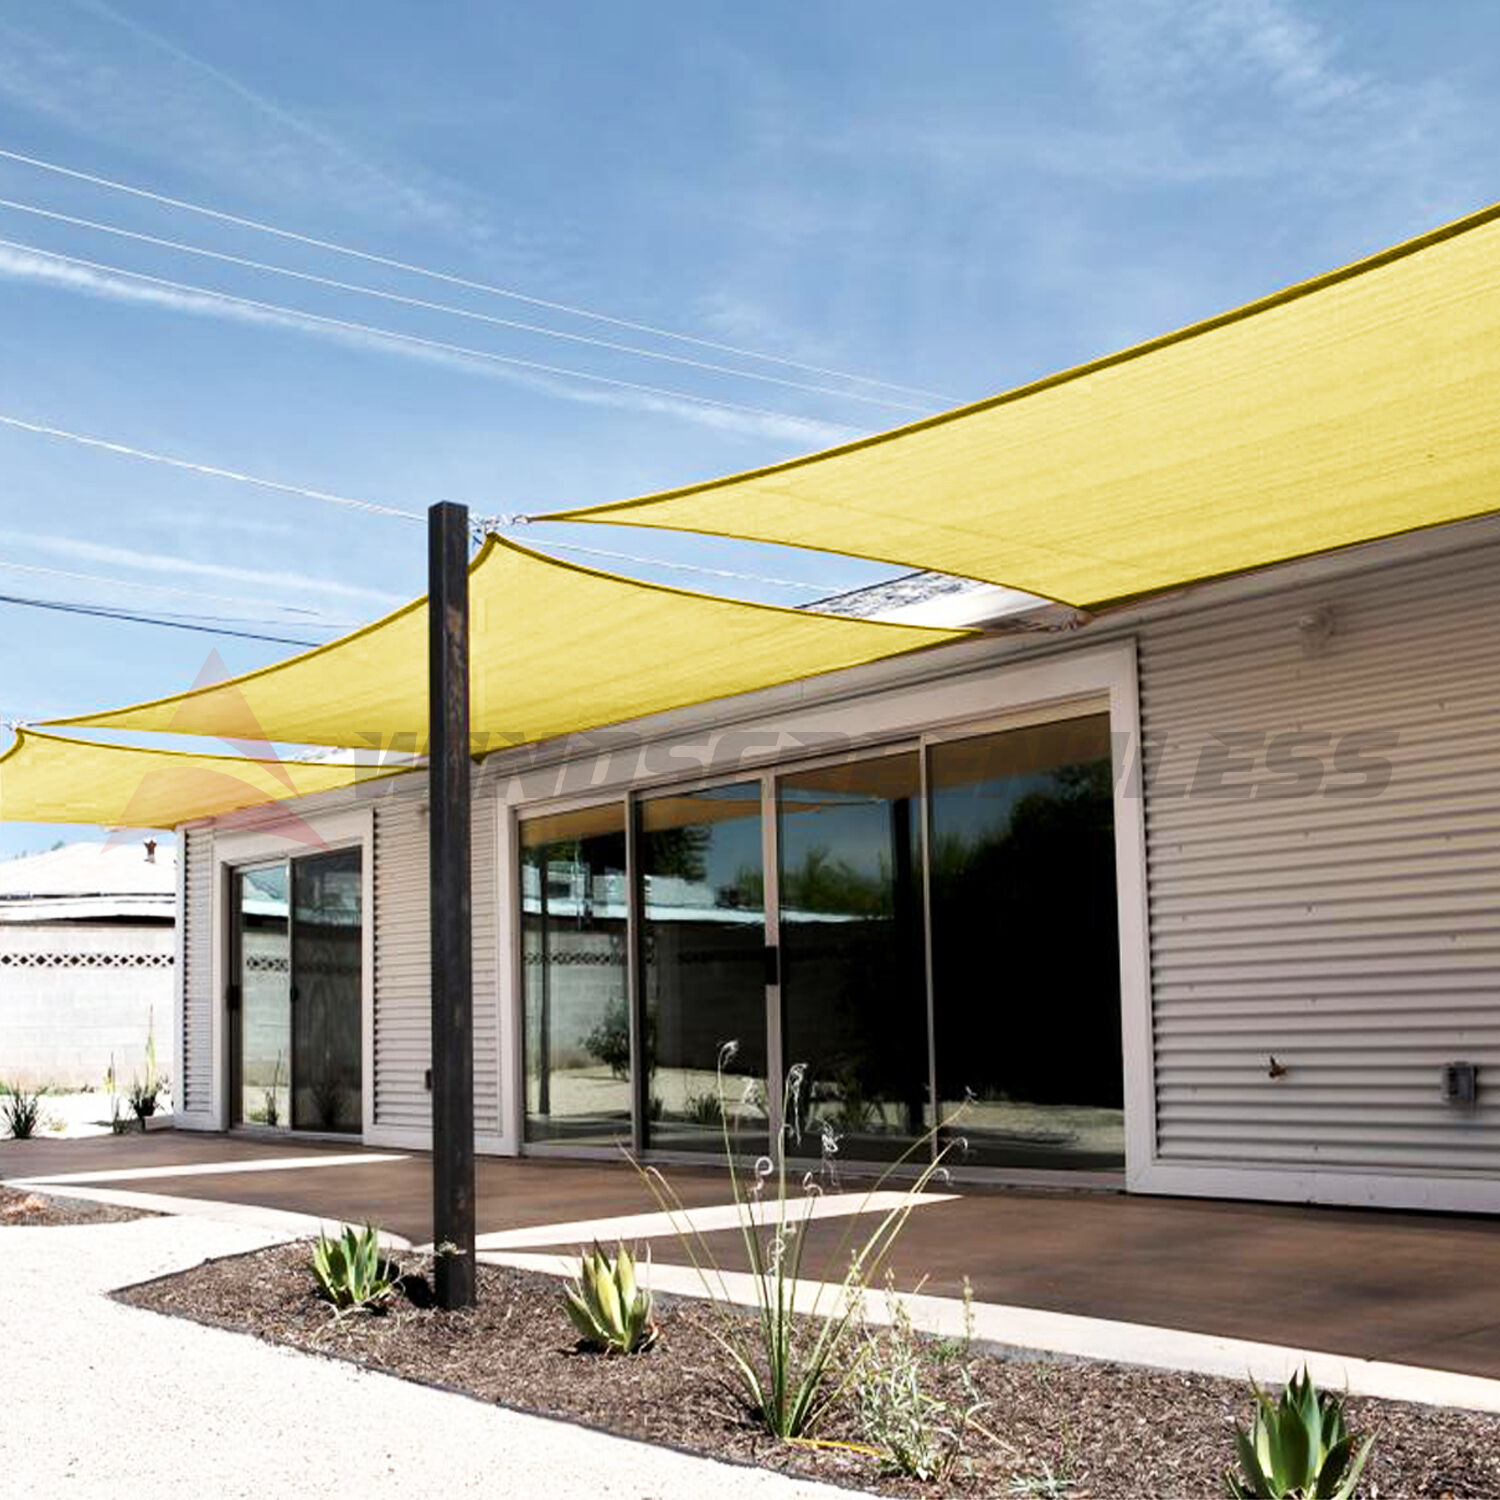 Details about Canary Yellow Square Rectangle Sun Shade Sail Fabric Patio Pool Canopy w/kit & Canary Yellow Square Rectangle Sun Shade Sail Fabric Patio Pool ...